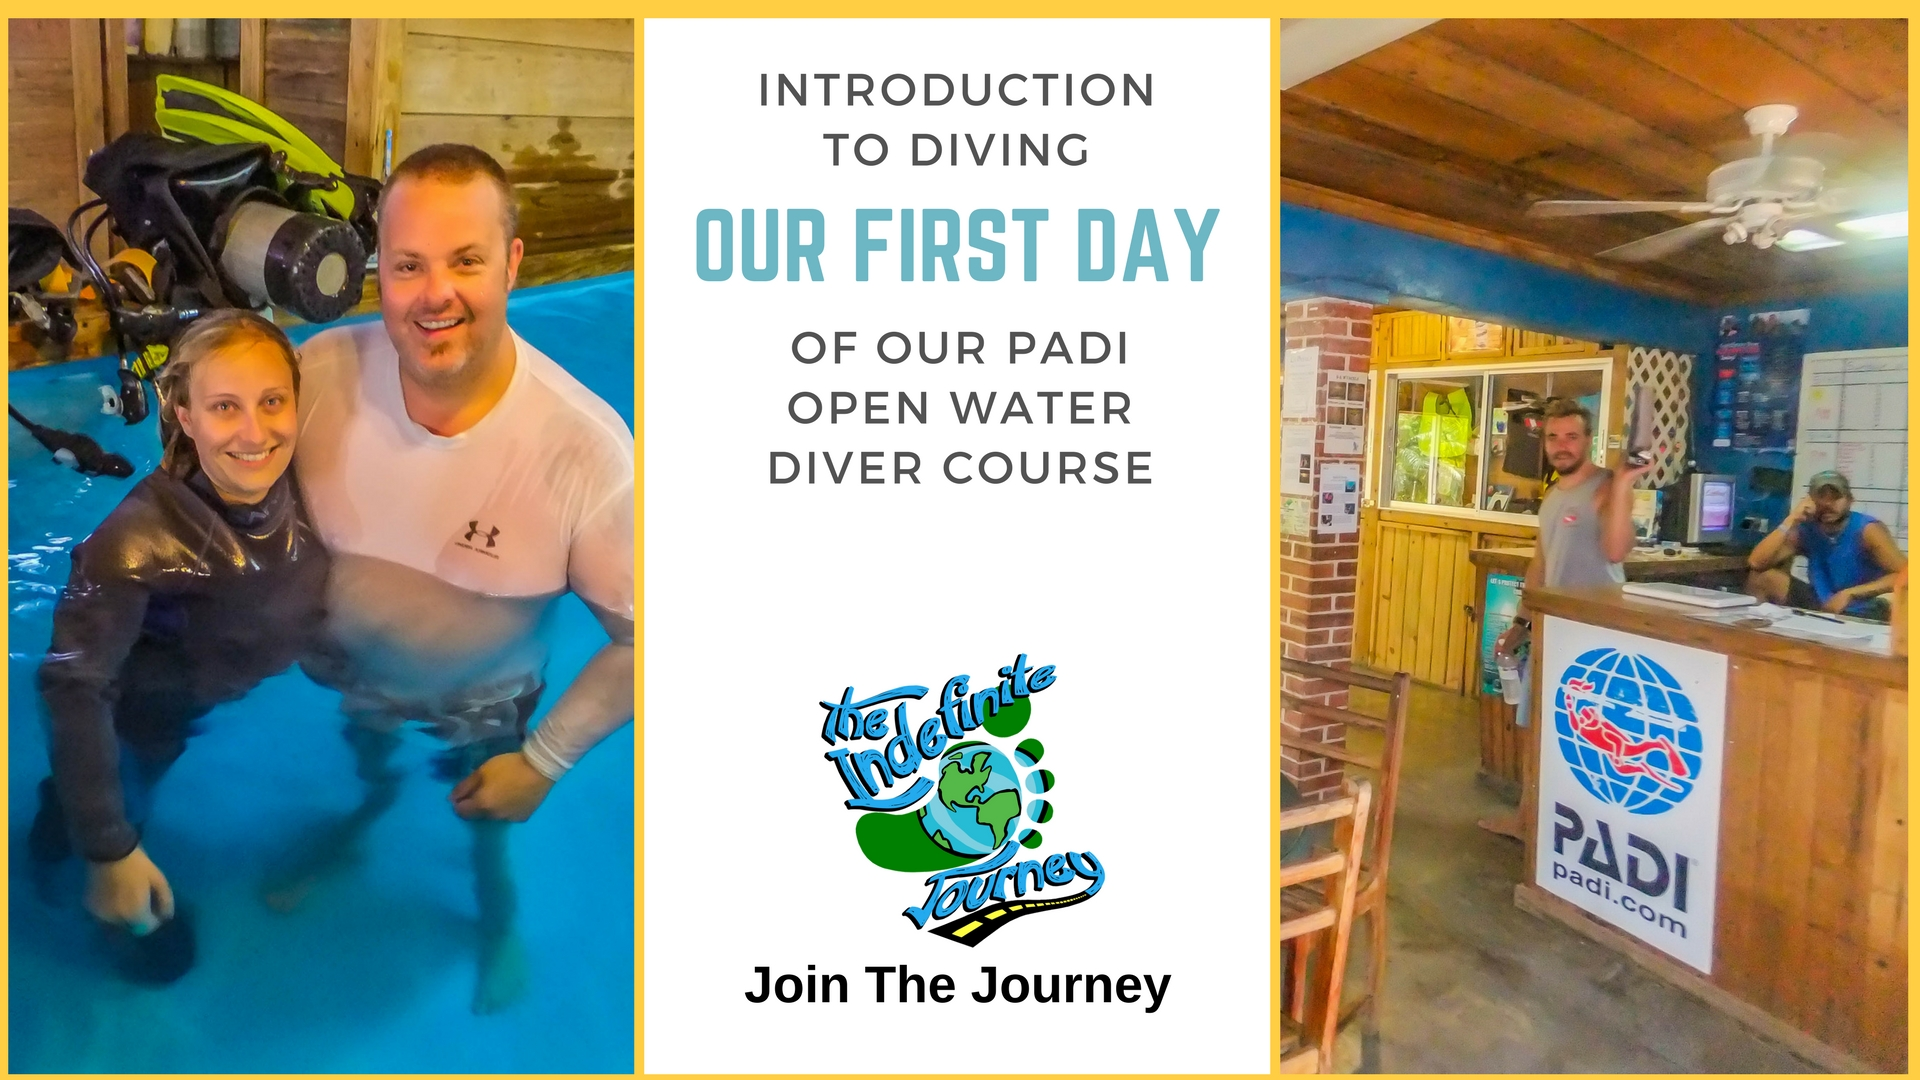 Introduction to Diving- Our First Day Of Our PADI Open Water Diver Course